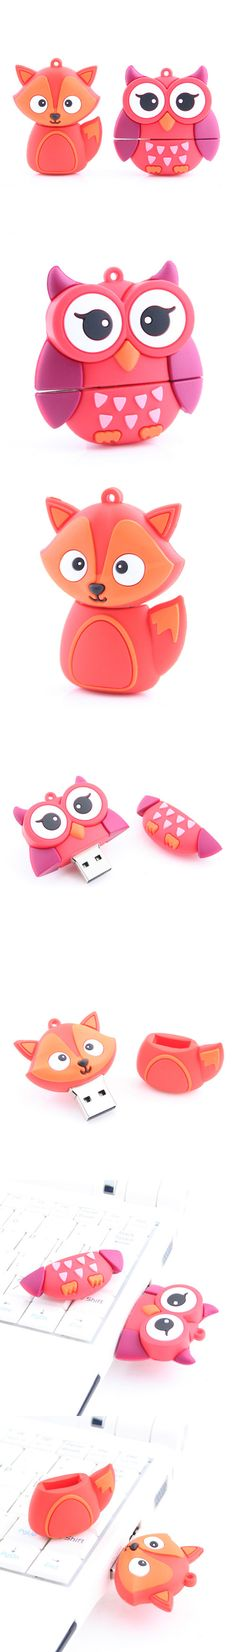 Owl & Fox USB Flash Drive http://www.usbgeek.com/products/owl-fox-usb-flash-drive